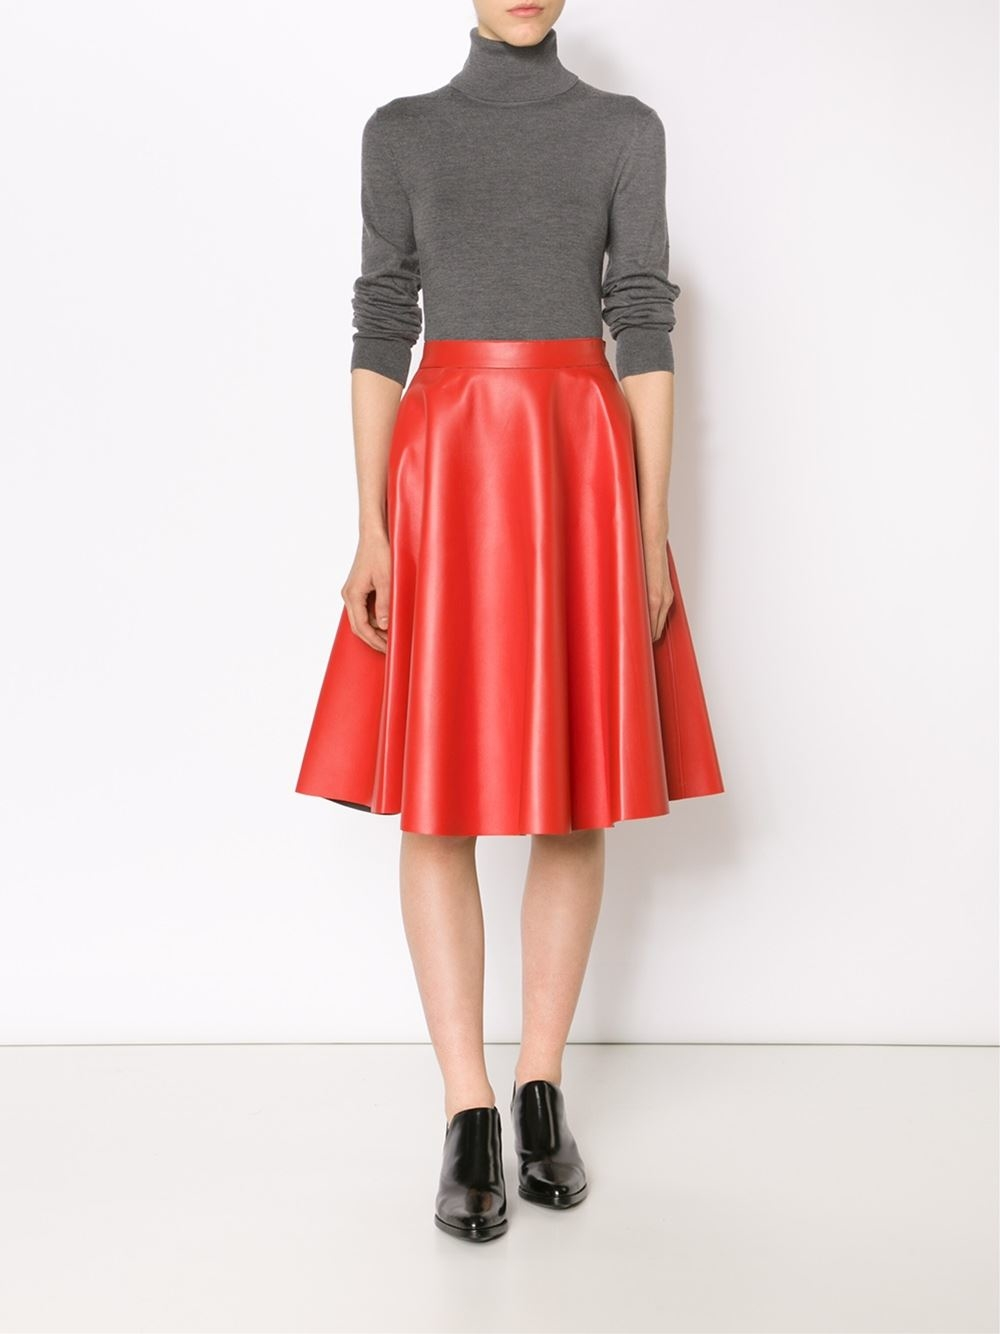 Msgm Faux Leather Skirt in Red | Lyst